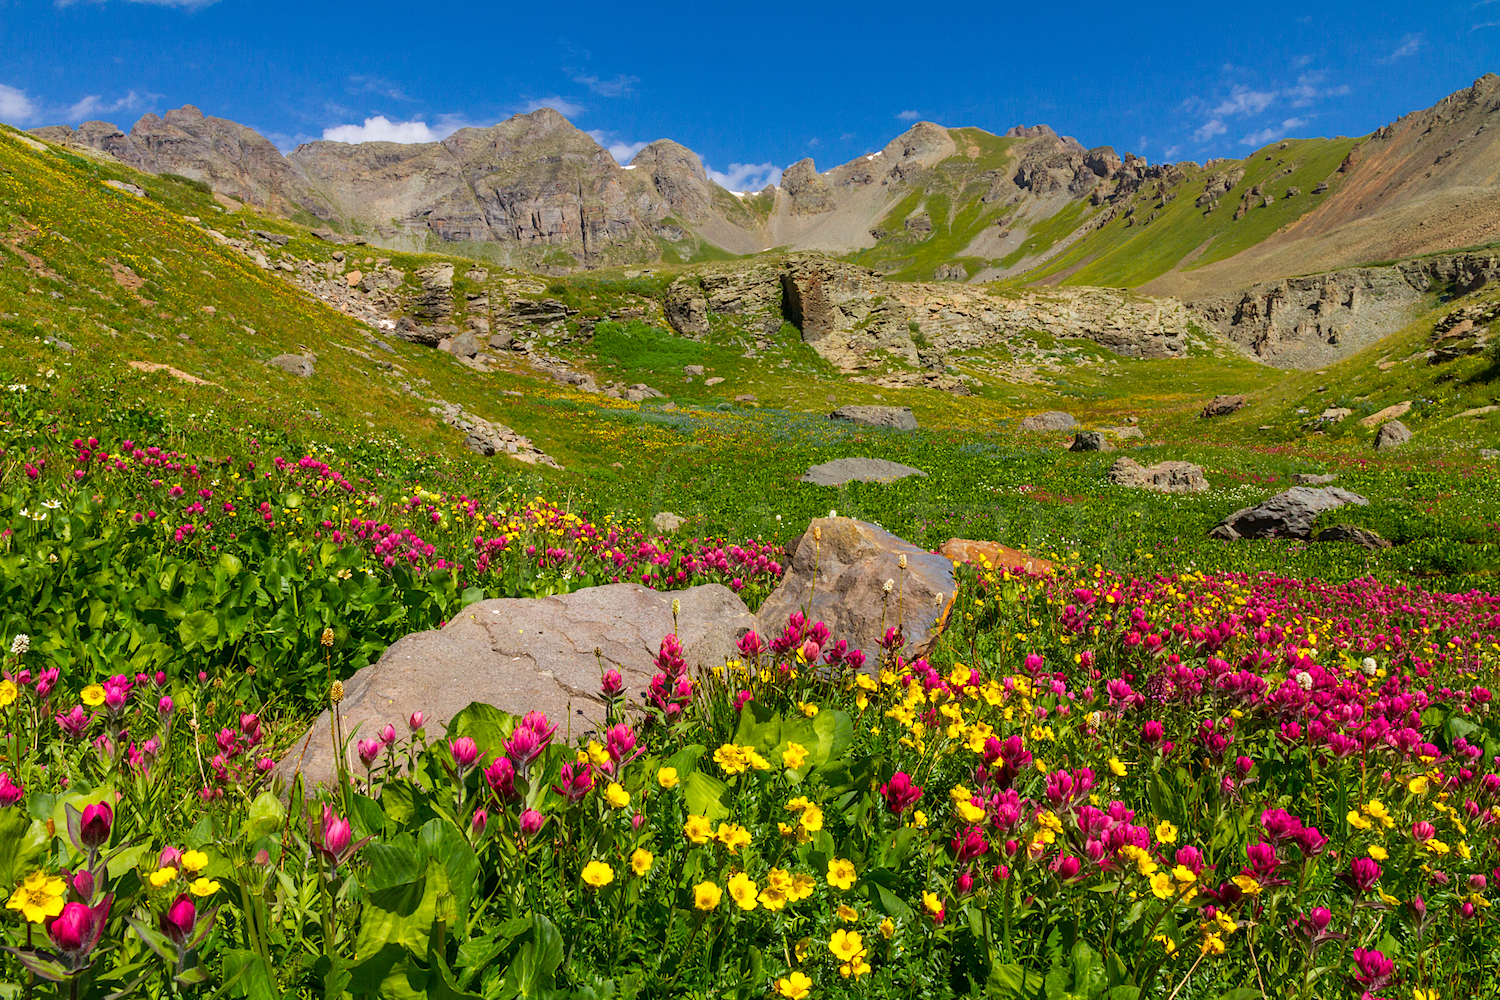 Clear Lake Wildflowers, Image # 3793